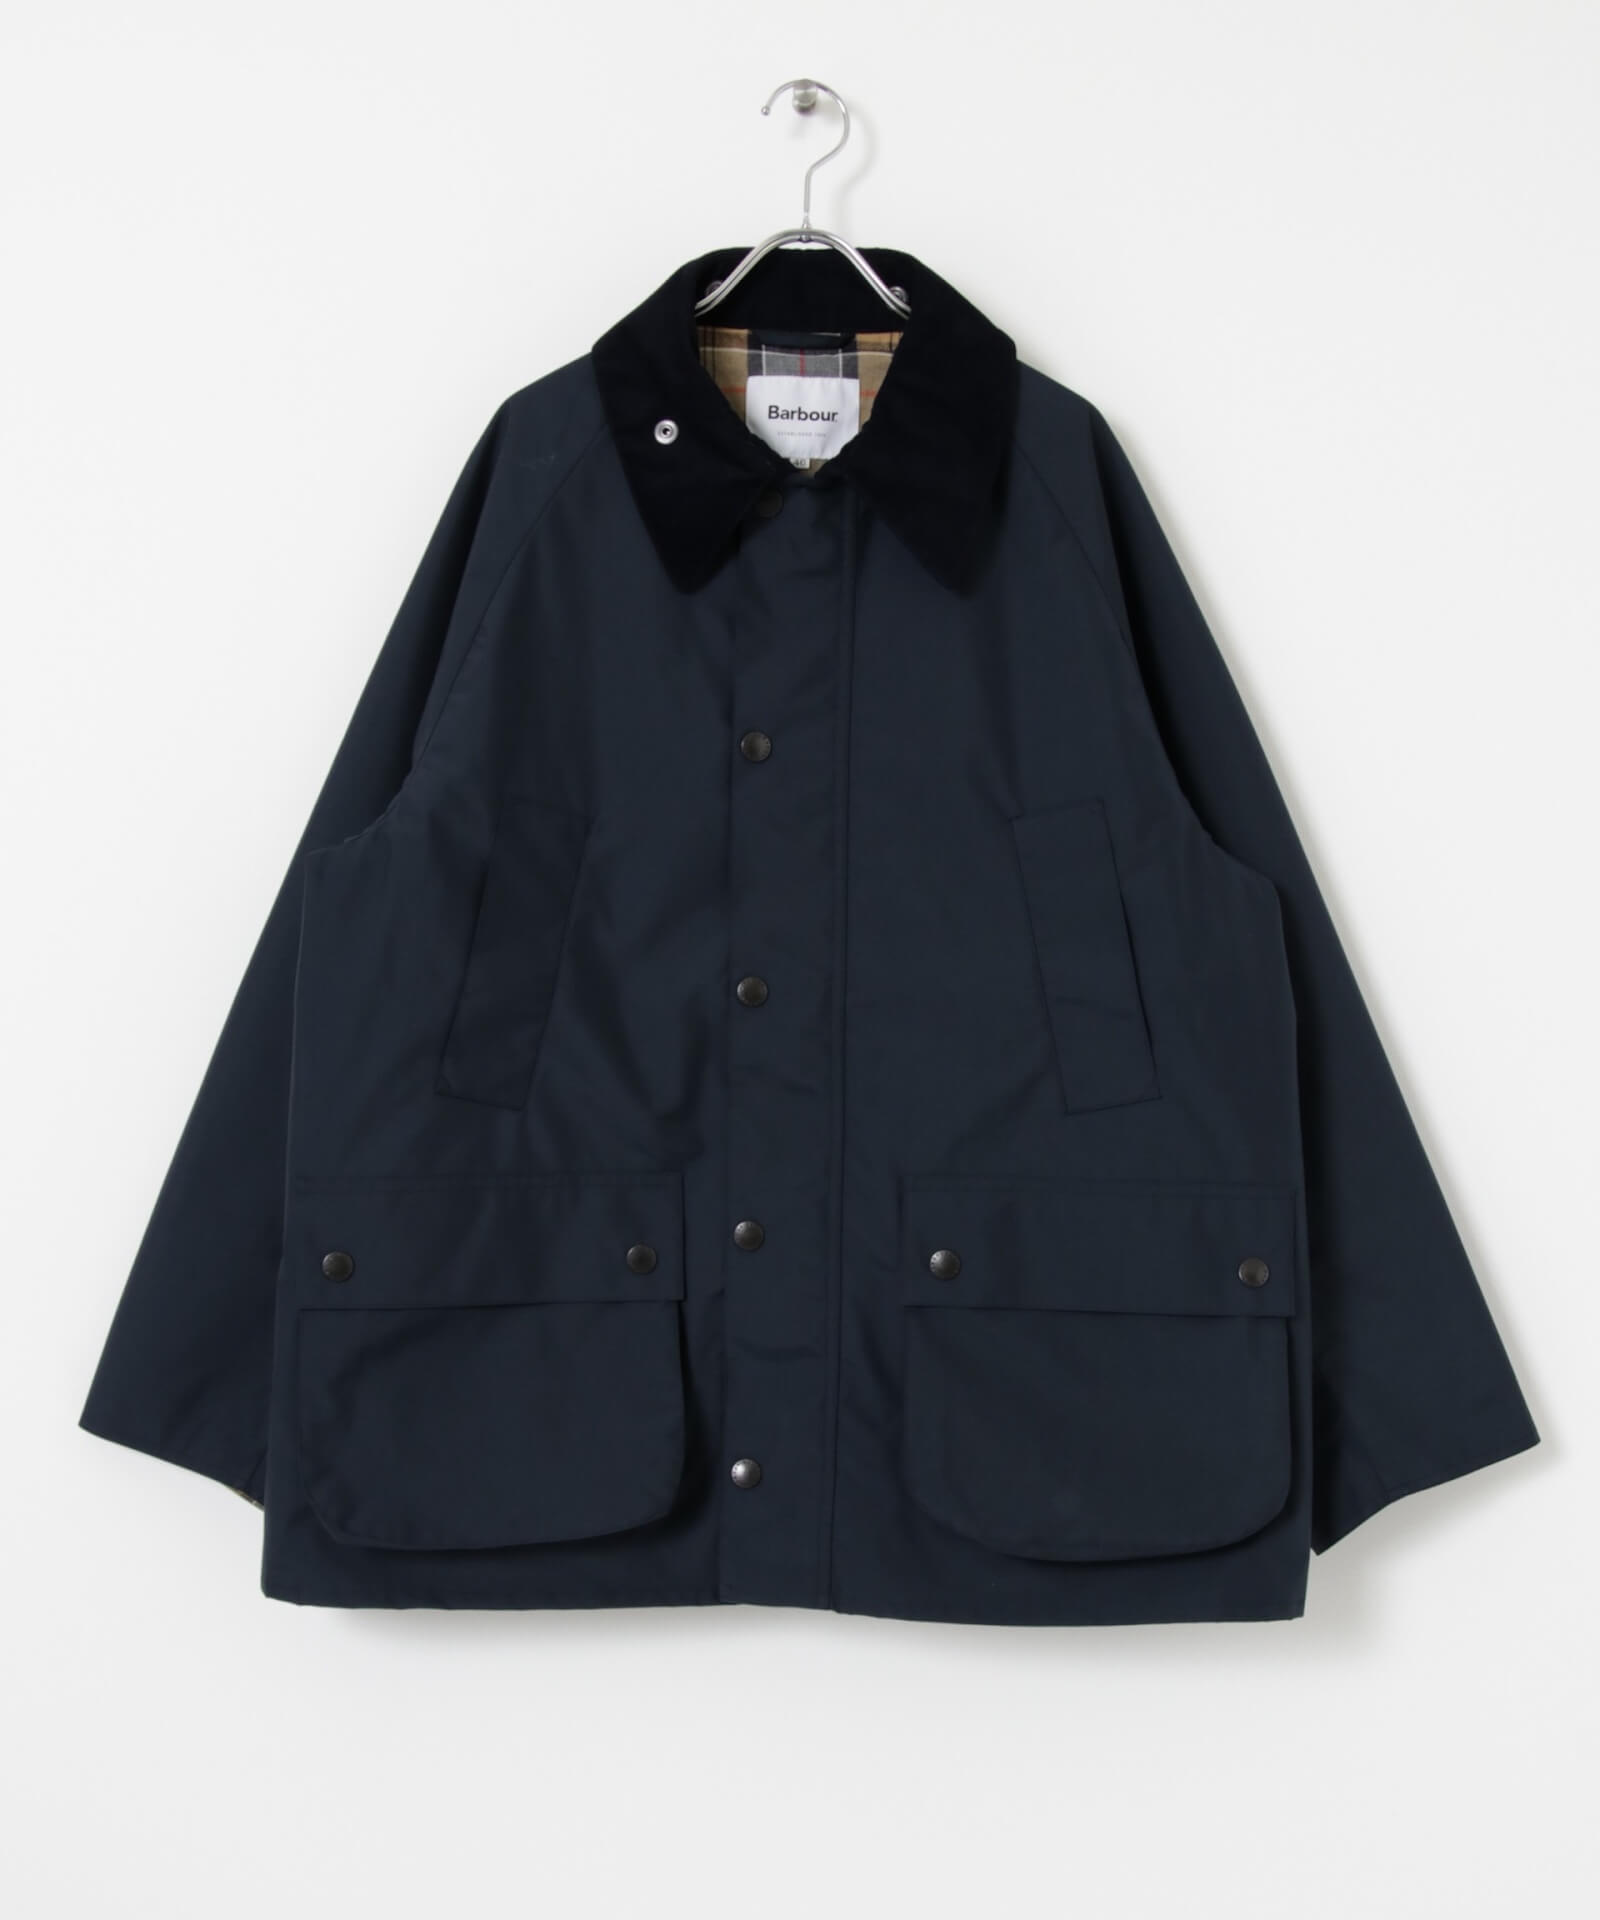 BarbourとworkahoLCのコラボアイテムが発売決定!OVER SIZE BEDALEモデルのジャケットが登場 life210913_urbs_barbour_3